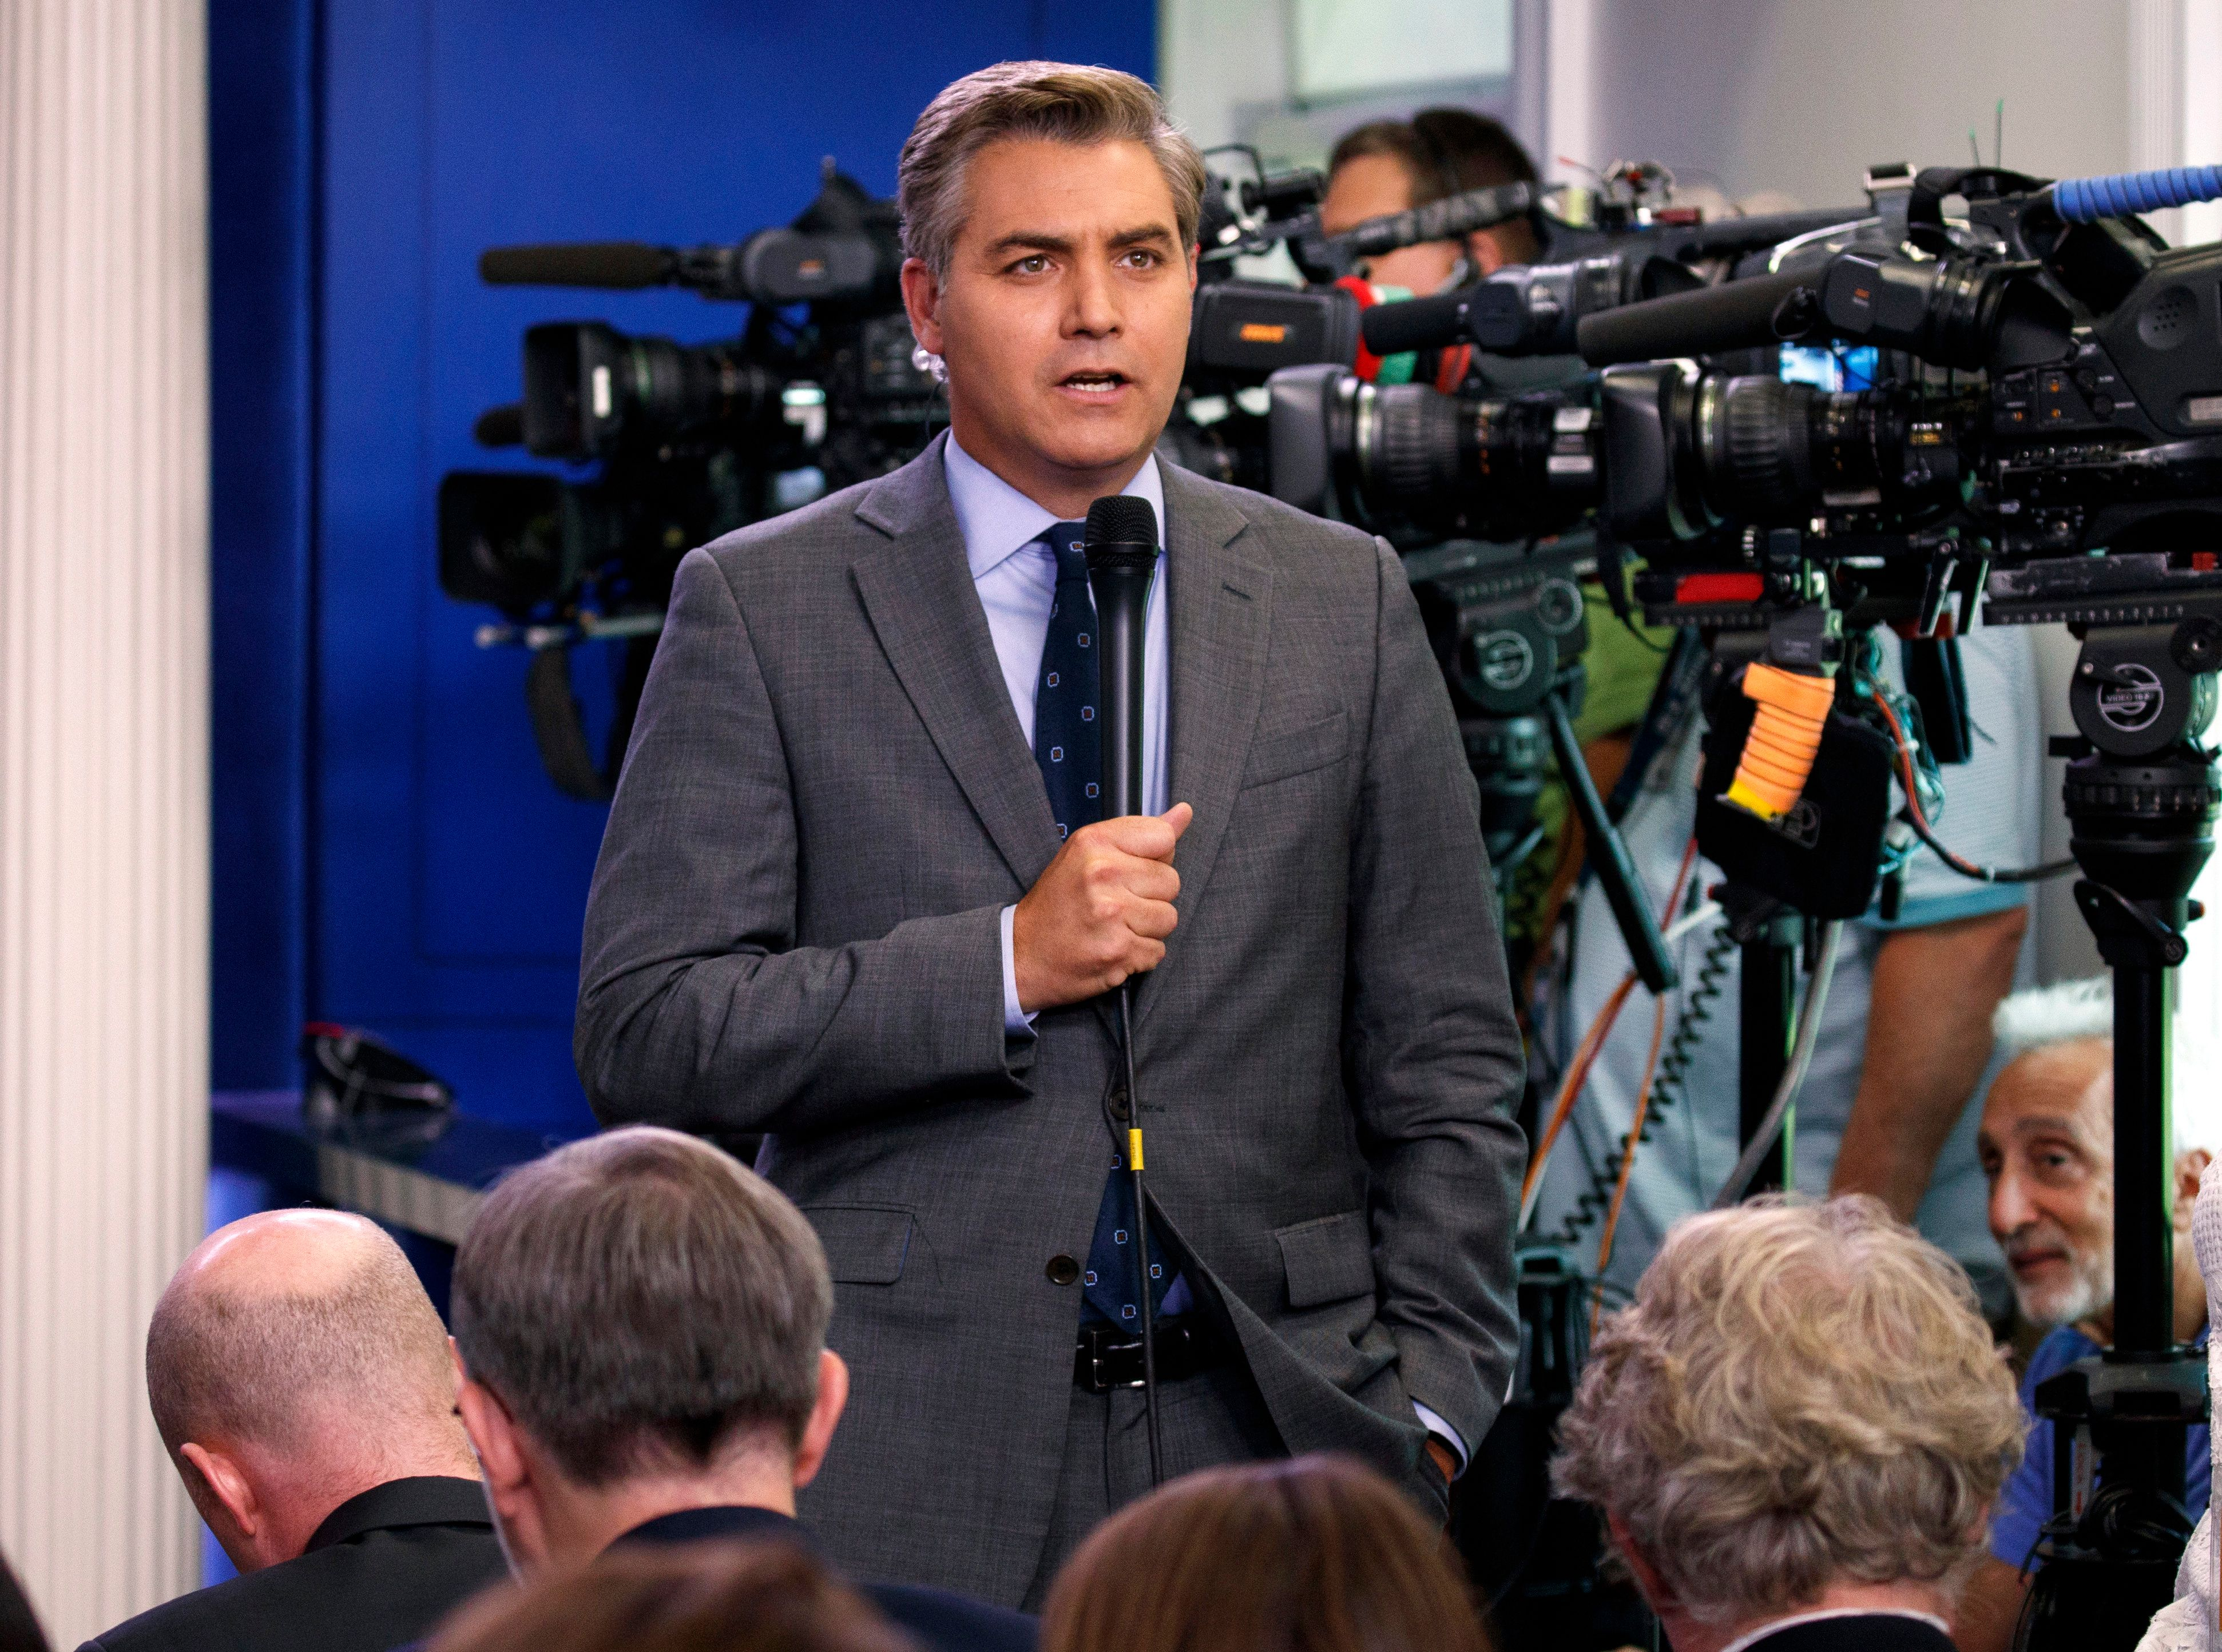 Who Is Jim Acosta? Everything You Need To Know About CNN's Headline-Making